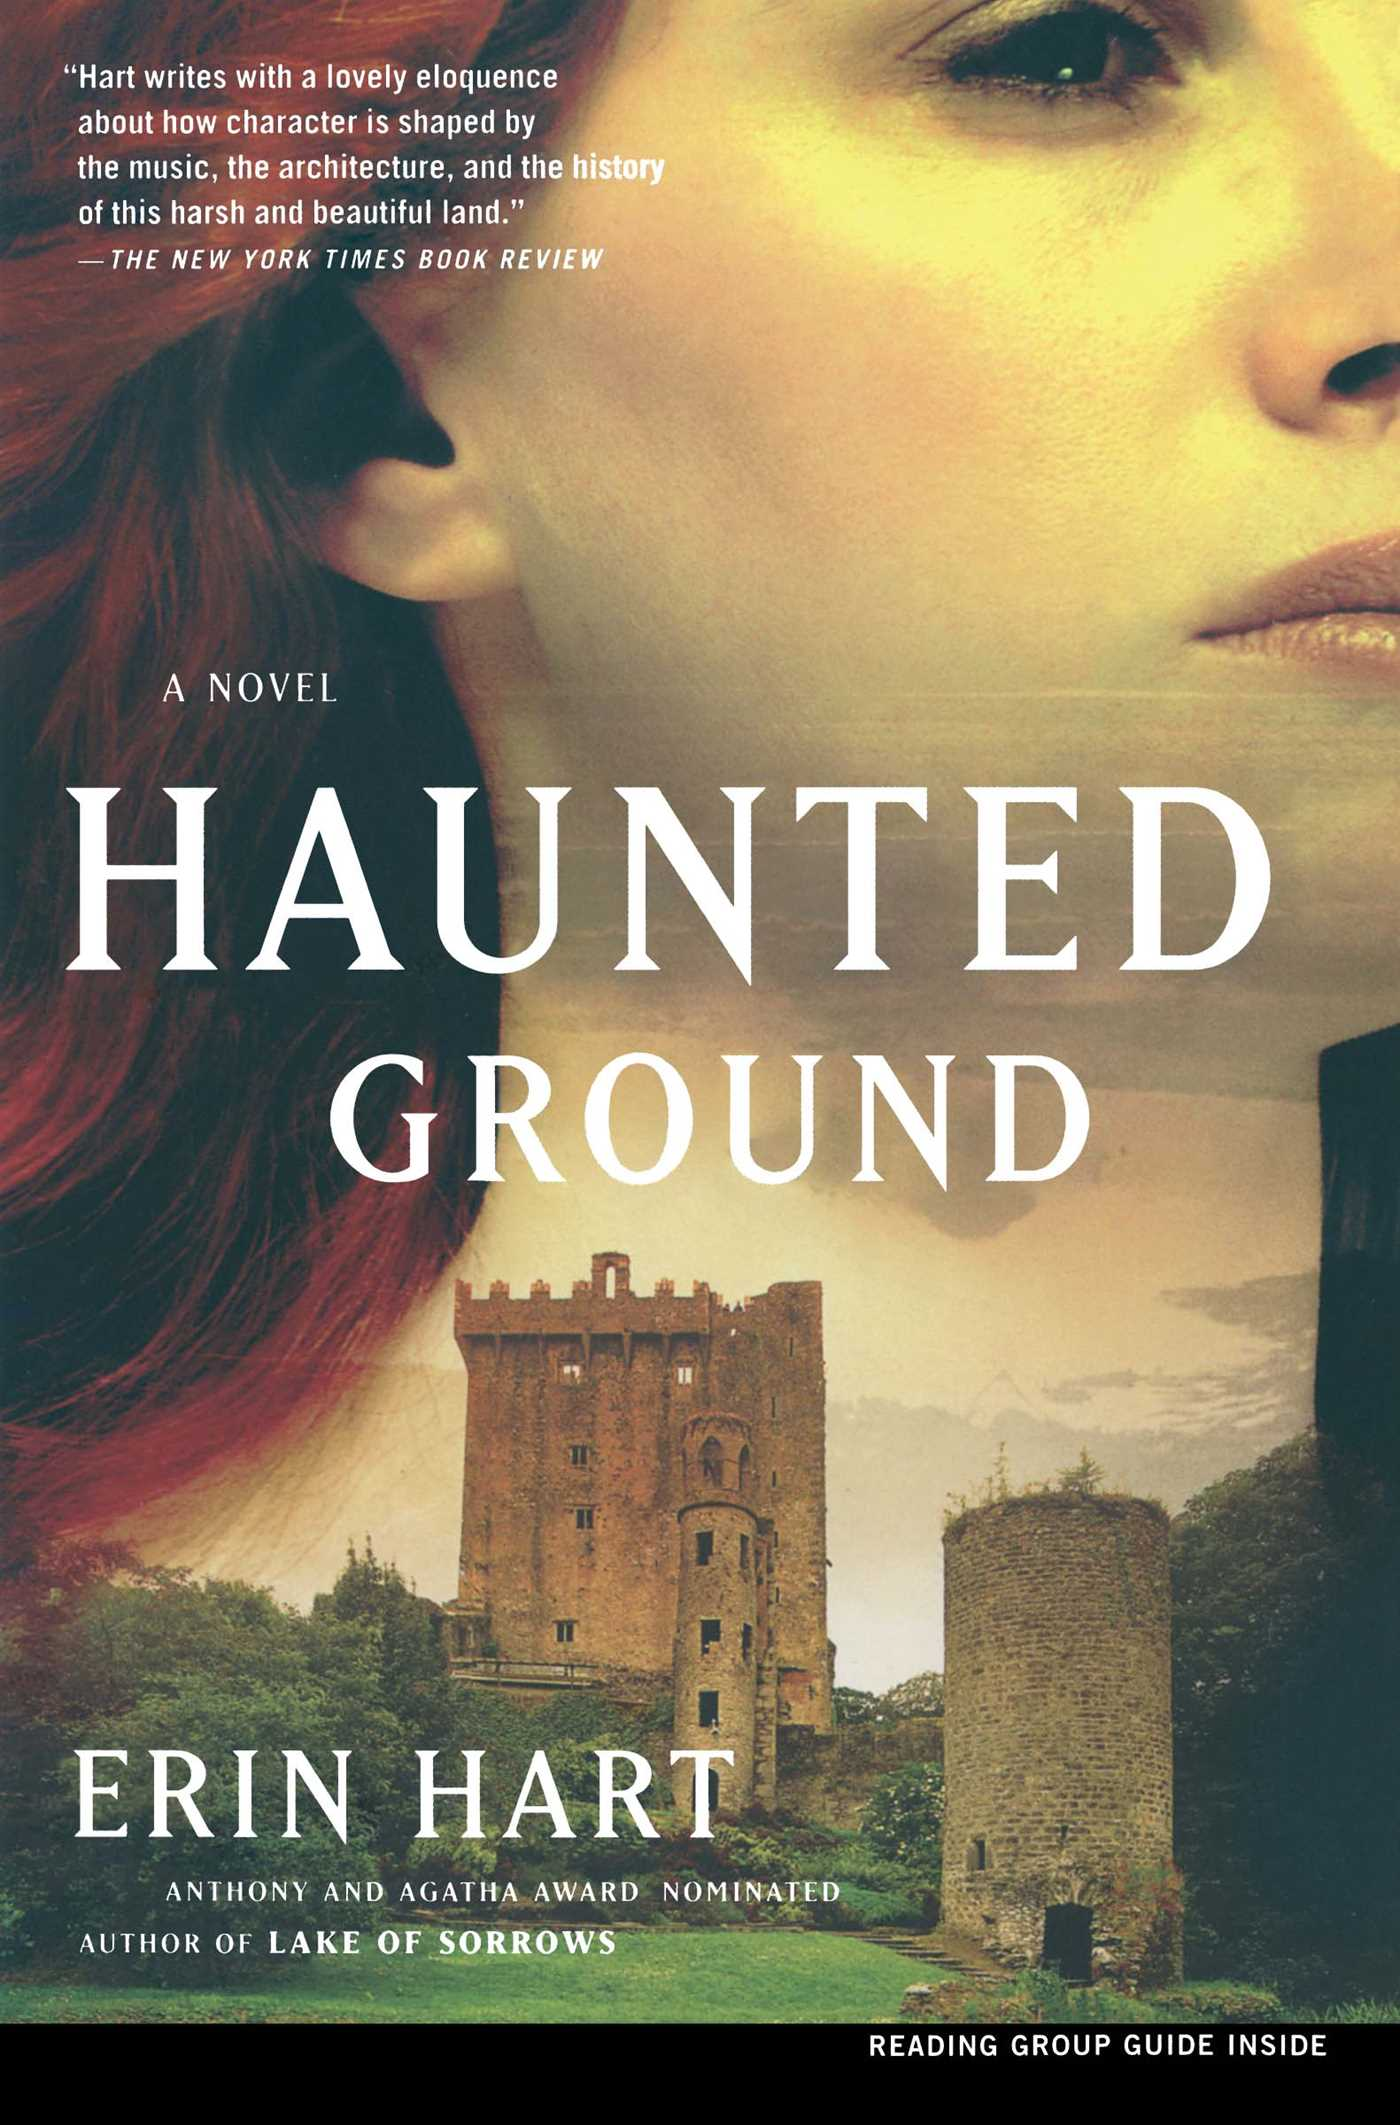 Haunted ground 9780743272100 hr